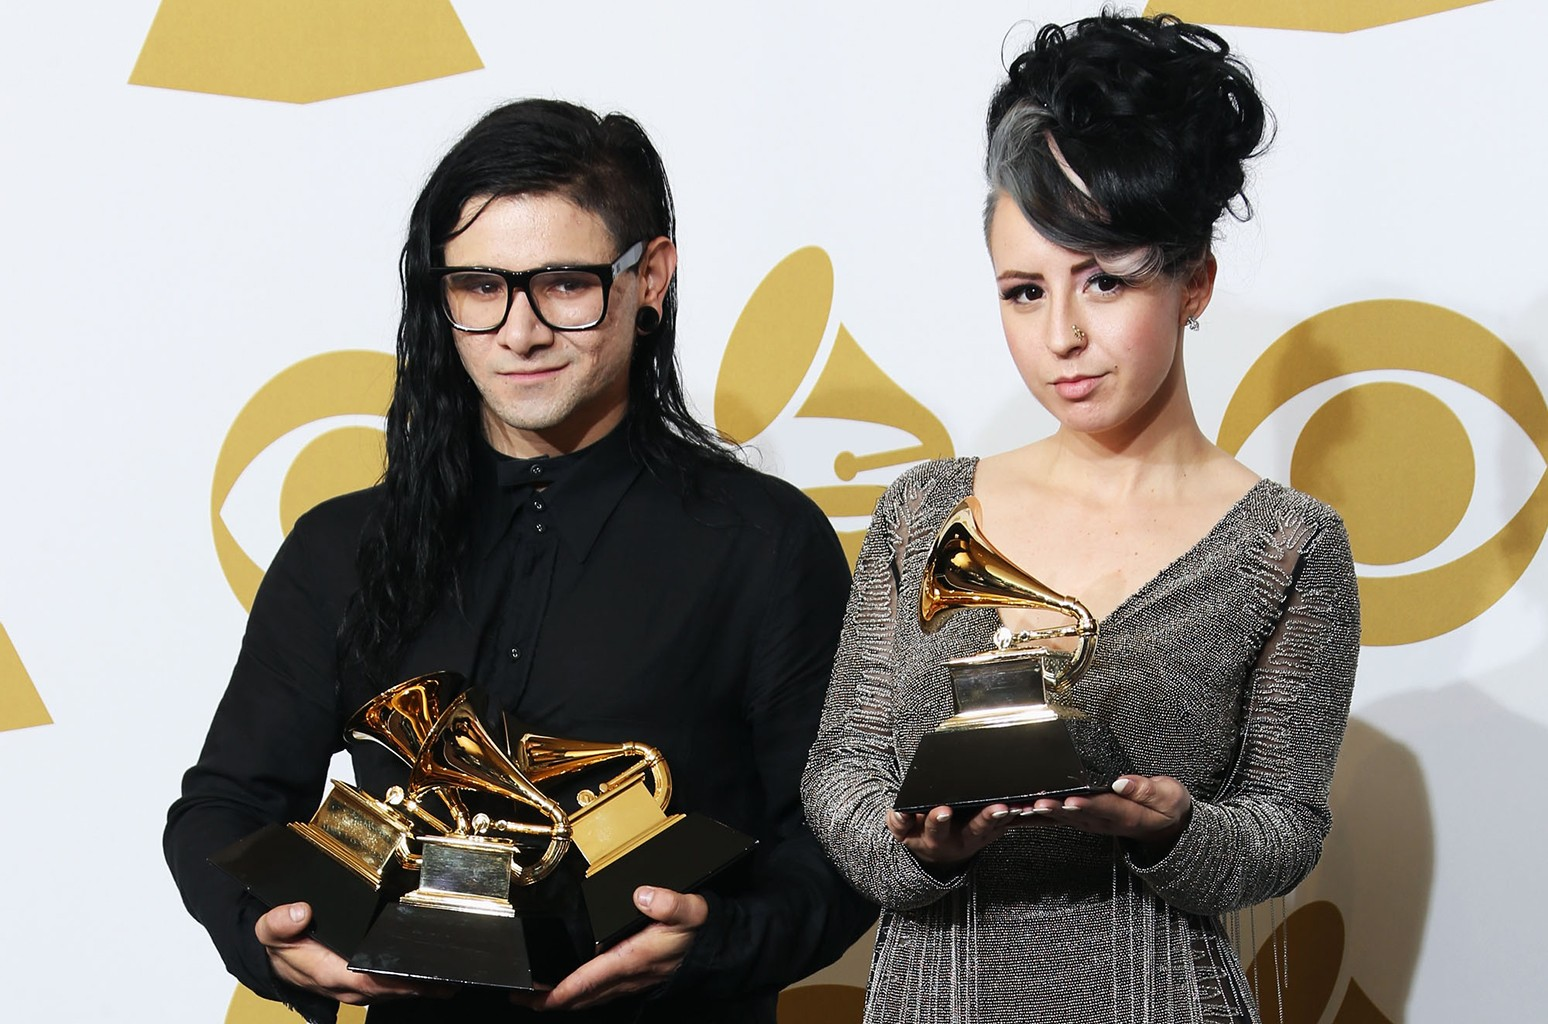 Skrillex and Sirah, 2017